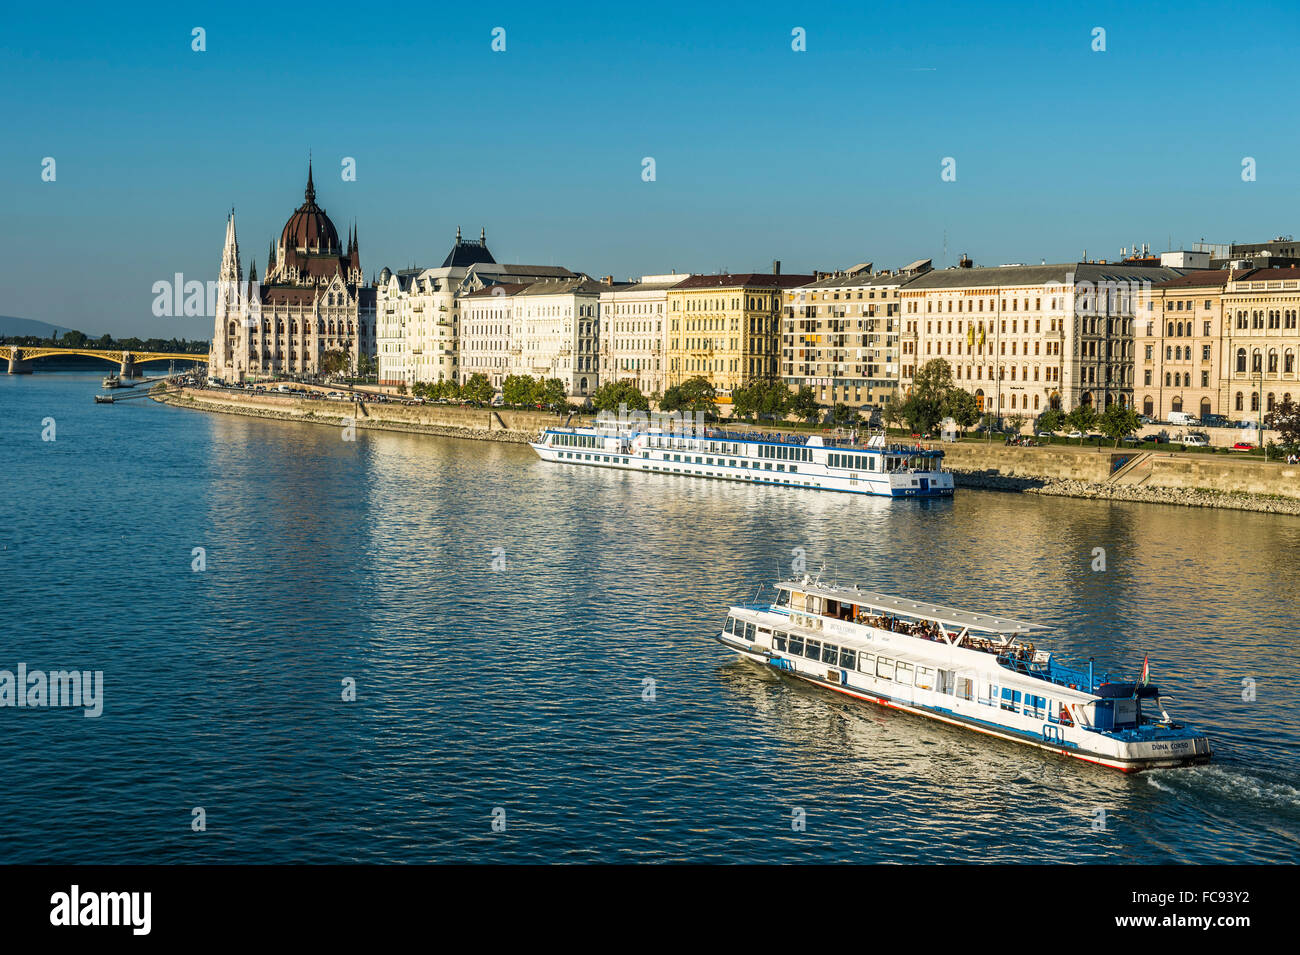 Little ferries on the River Danube in front of the Panorama of Pest, Budapest, Hungary, Europe - Stock Image